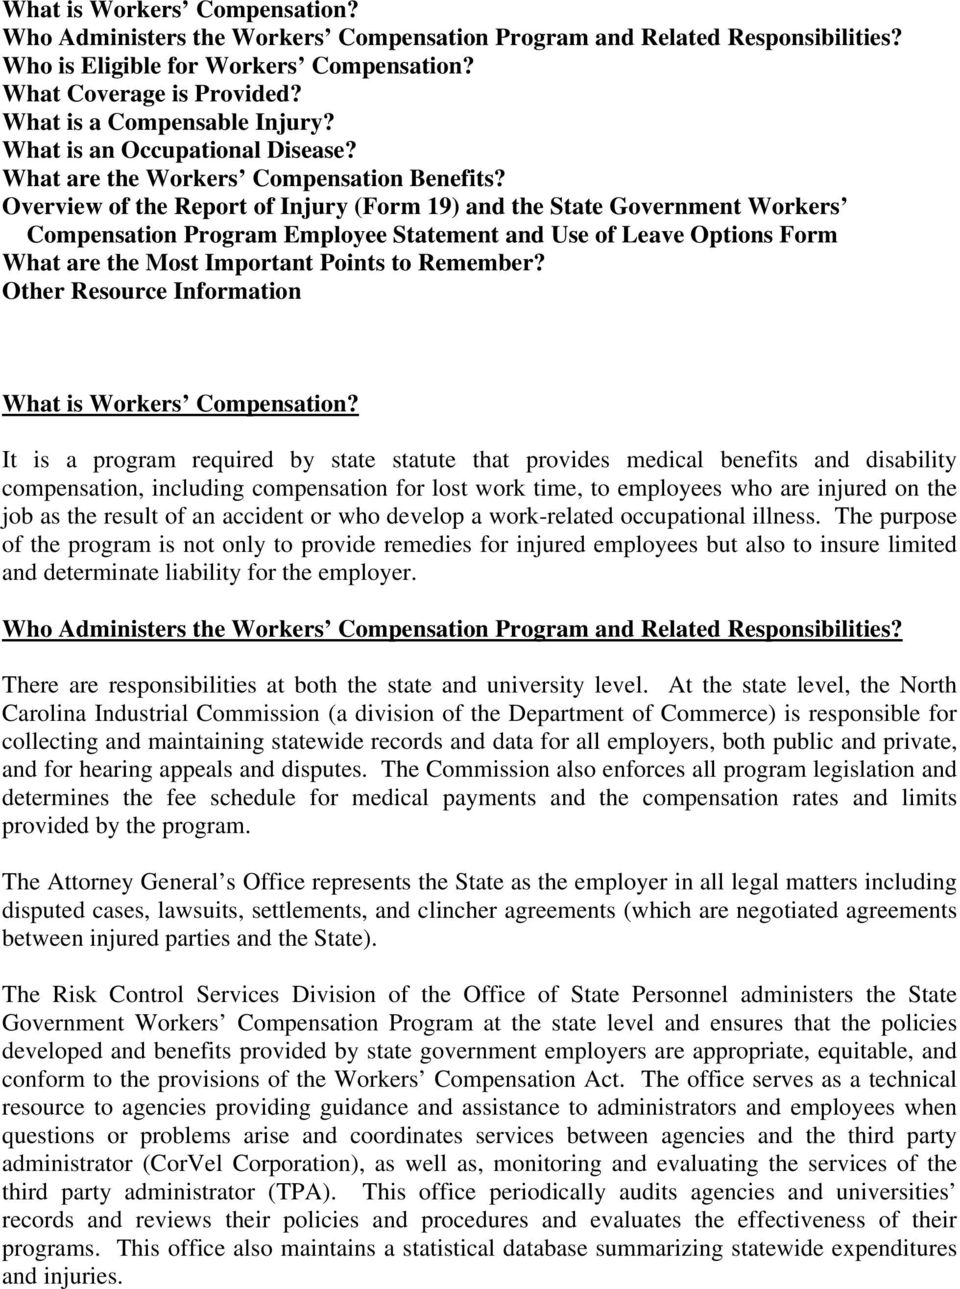 Overview of the Report of Injury (Form 19) and the State Government Workers Compensation Program Employee Statement and Use of Leave Options Form What are the Most Important Points to Remember?